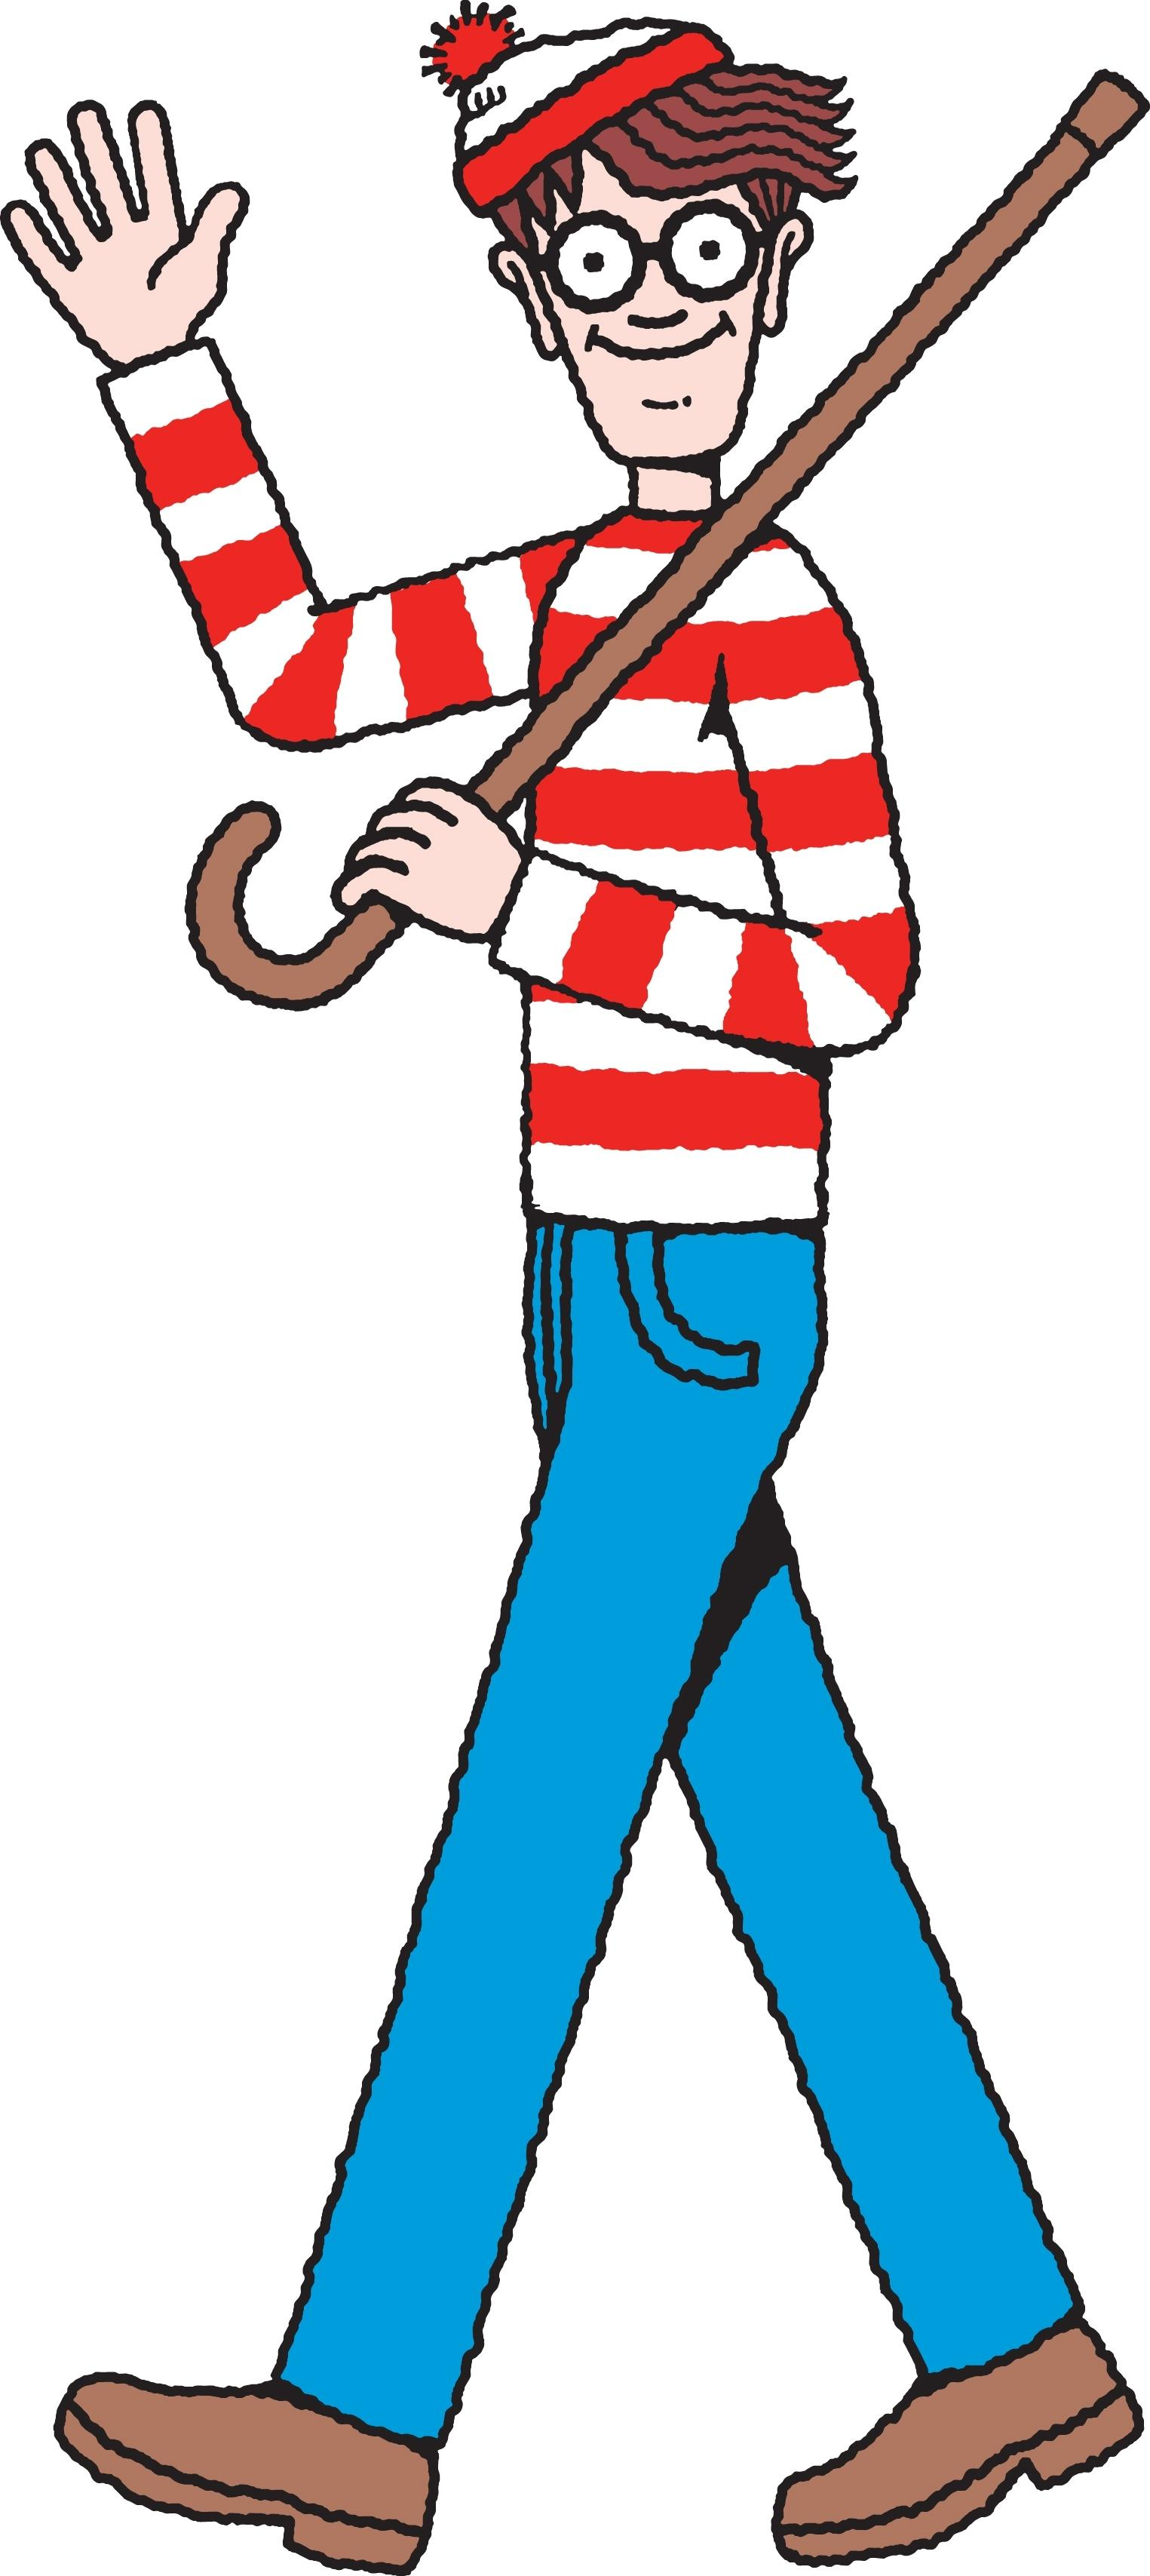 Where's Waldo Characters Png (+).